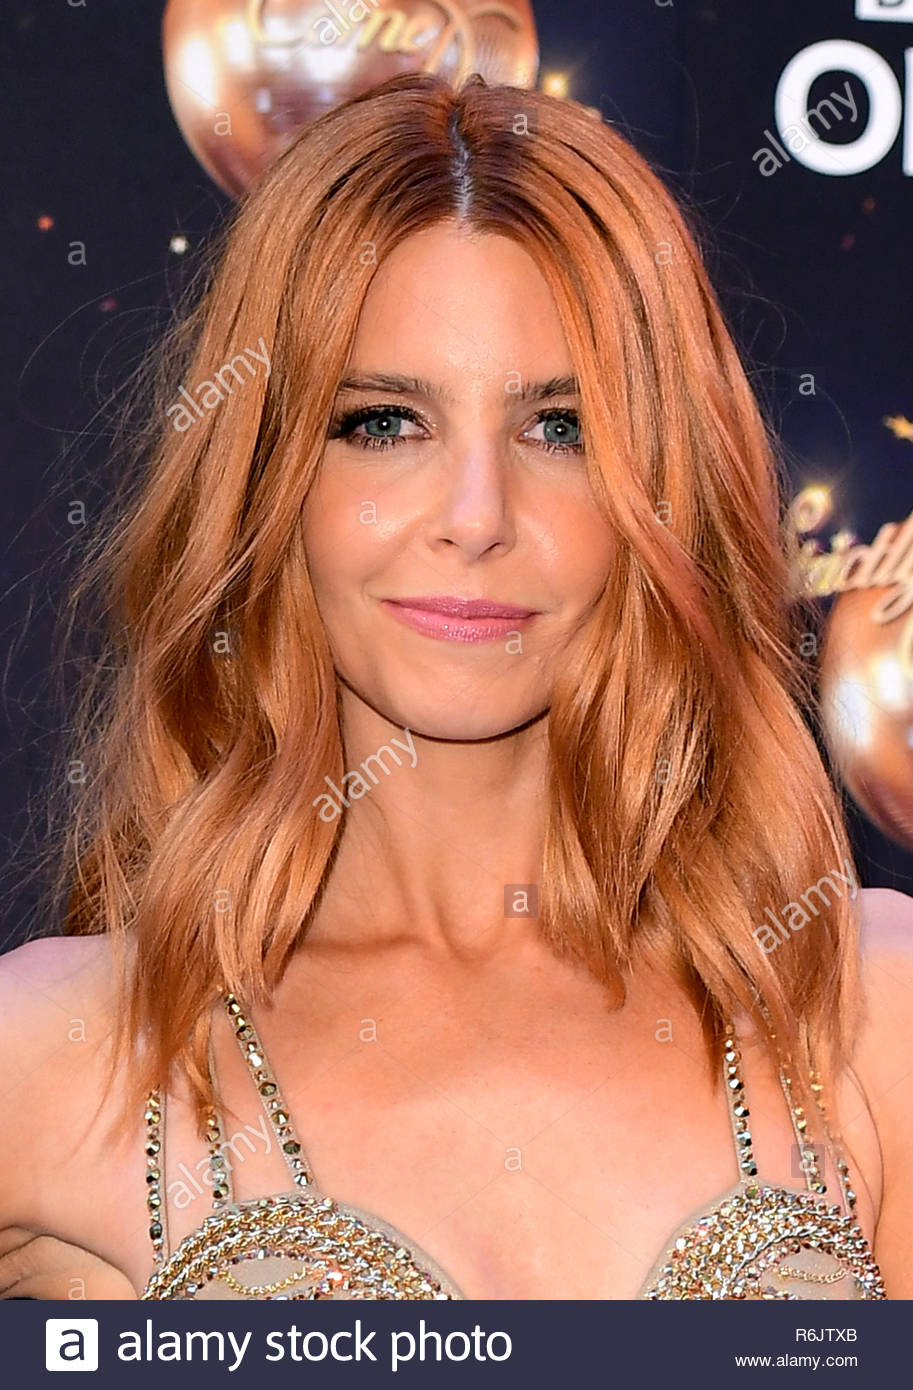 File photo dated 27/08/18 of Strictly Come Dancing star Stacey Dooley, who has said her performance on last week's show left friends and family at home 'sobbing in the living room'. - Stock Image